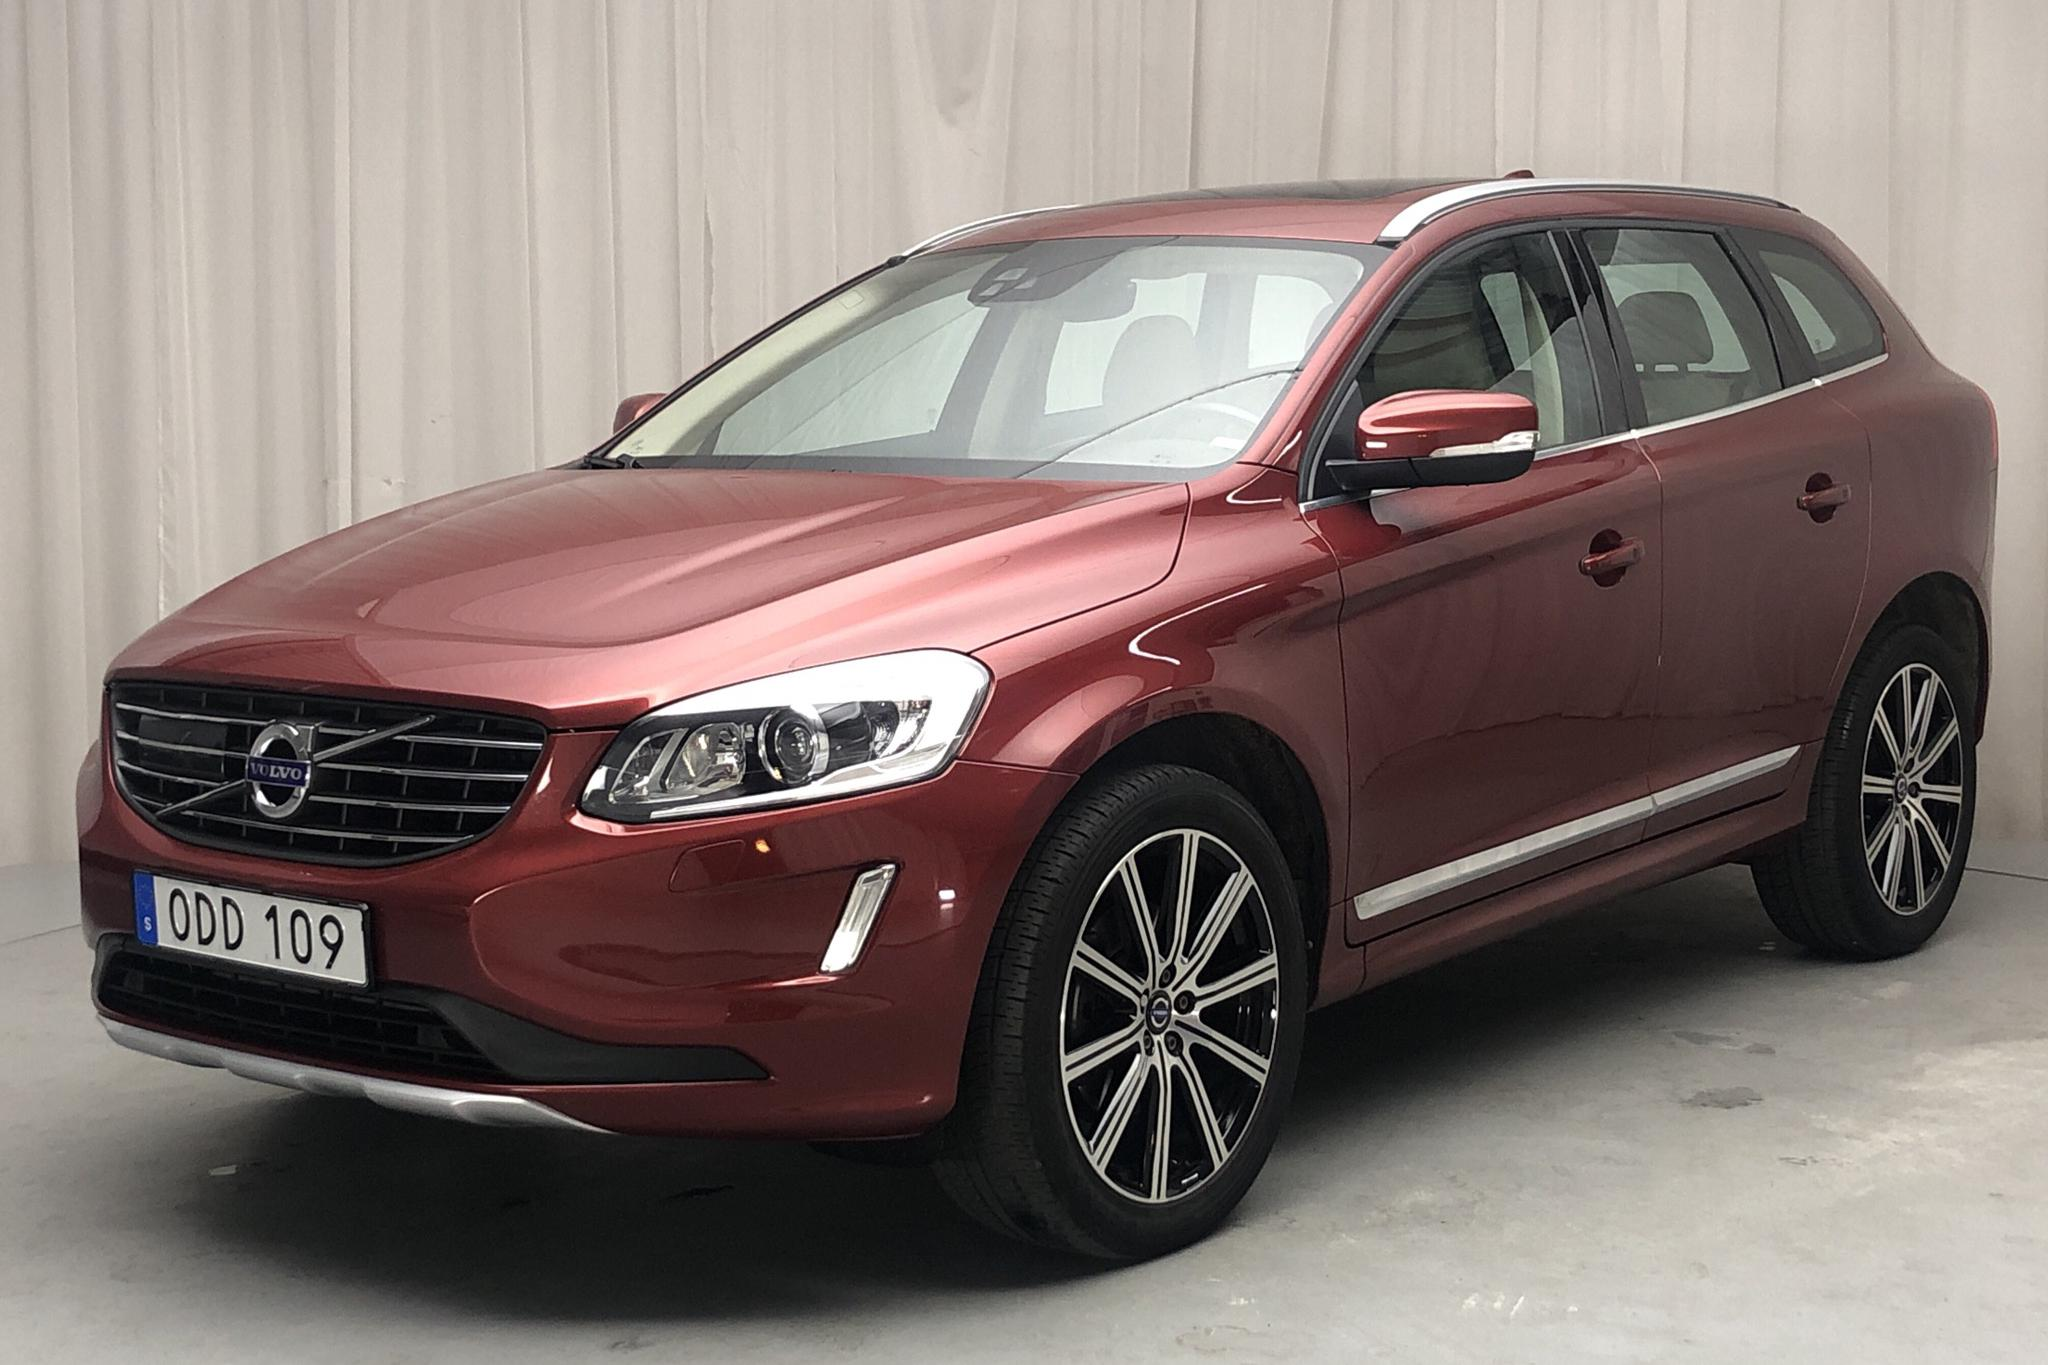 Volvo XC60 D4 AWD (190hk) - 66 390 km - Automatic - red - 2017